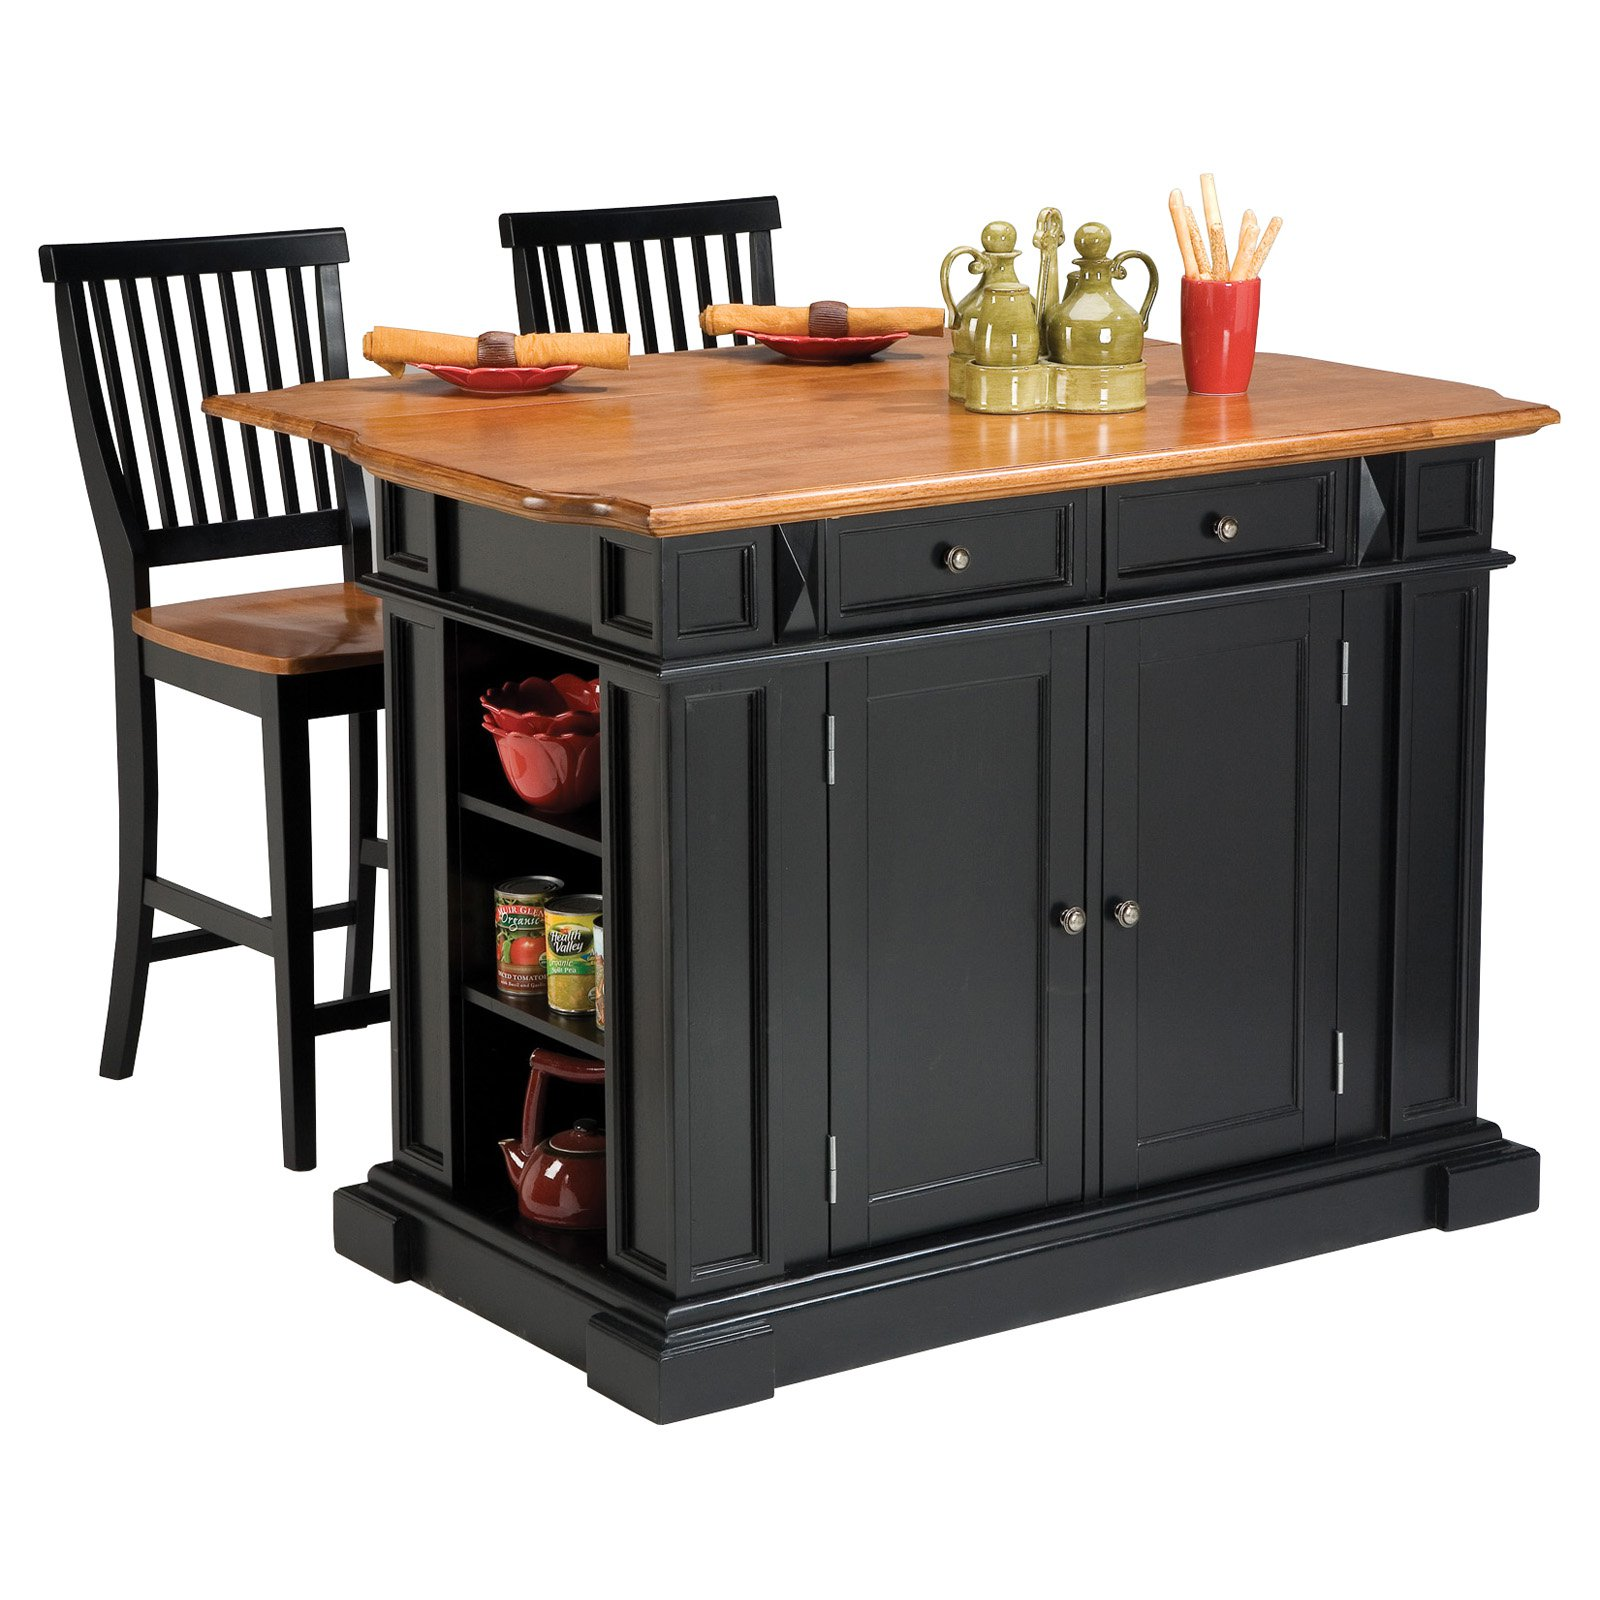 Drop leaf kitchen island cart – Kitchen ideas